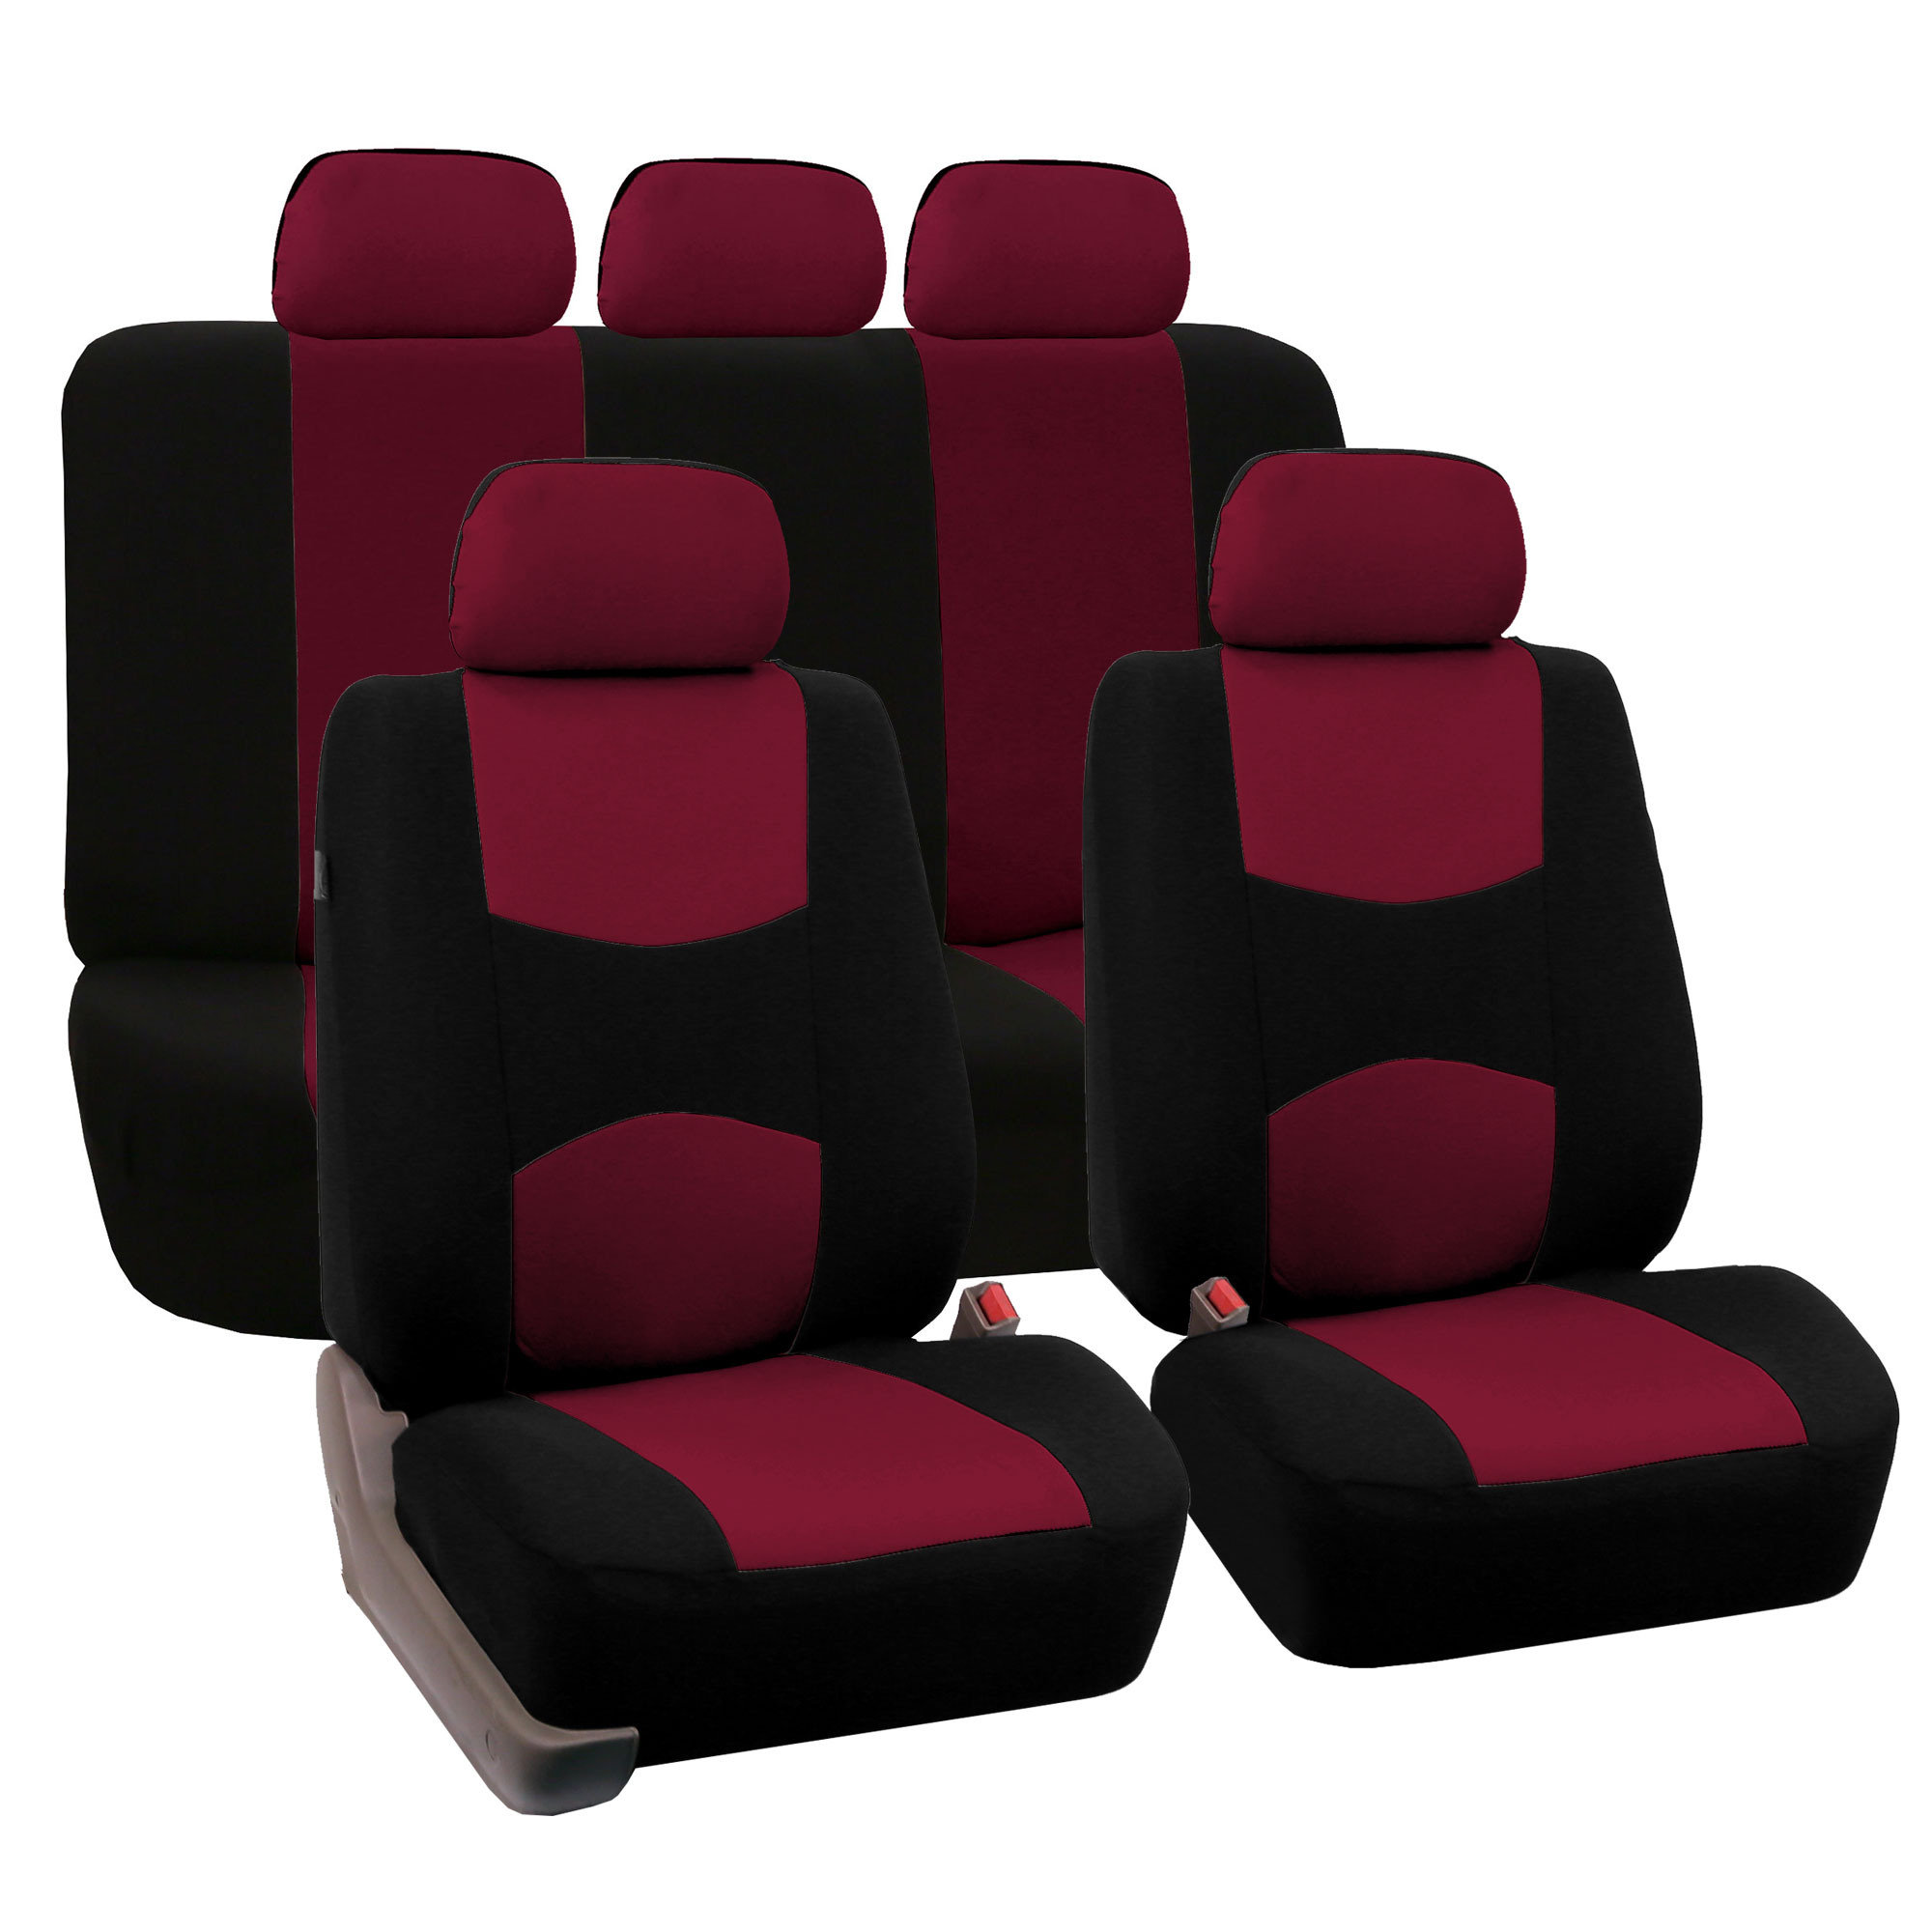 FH Group Universal Flat Cloth Fabric 5 Headrests Full Set Car Seat Cover, Burgundy and Black